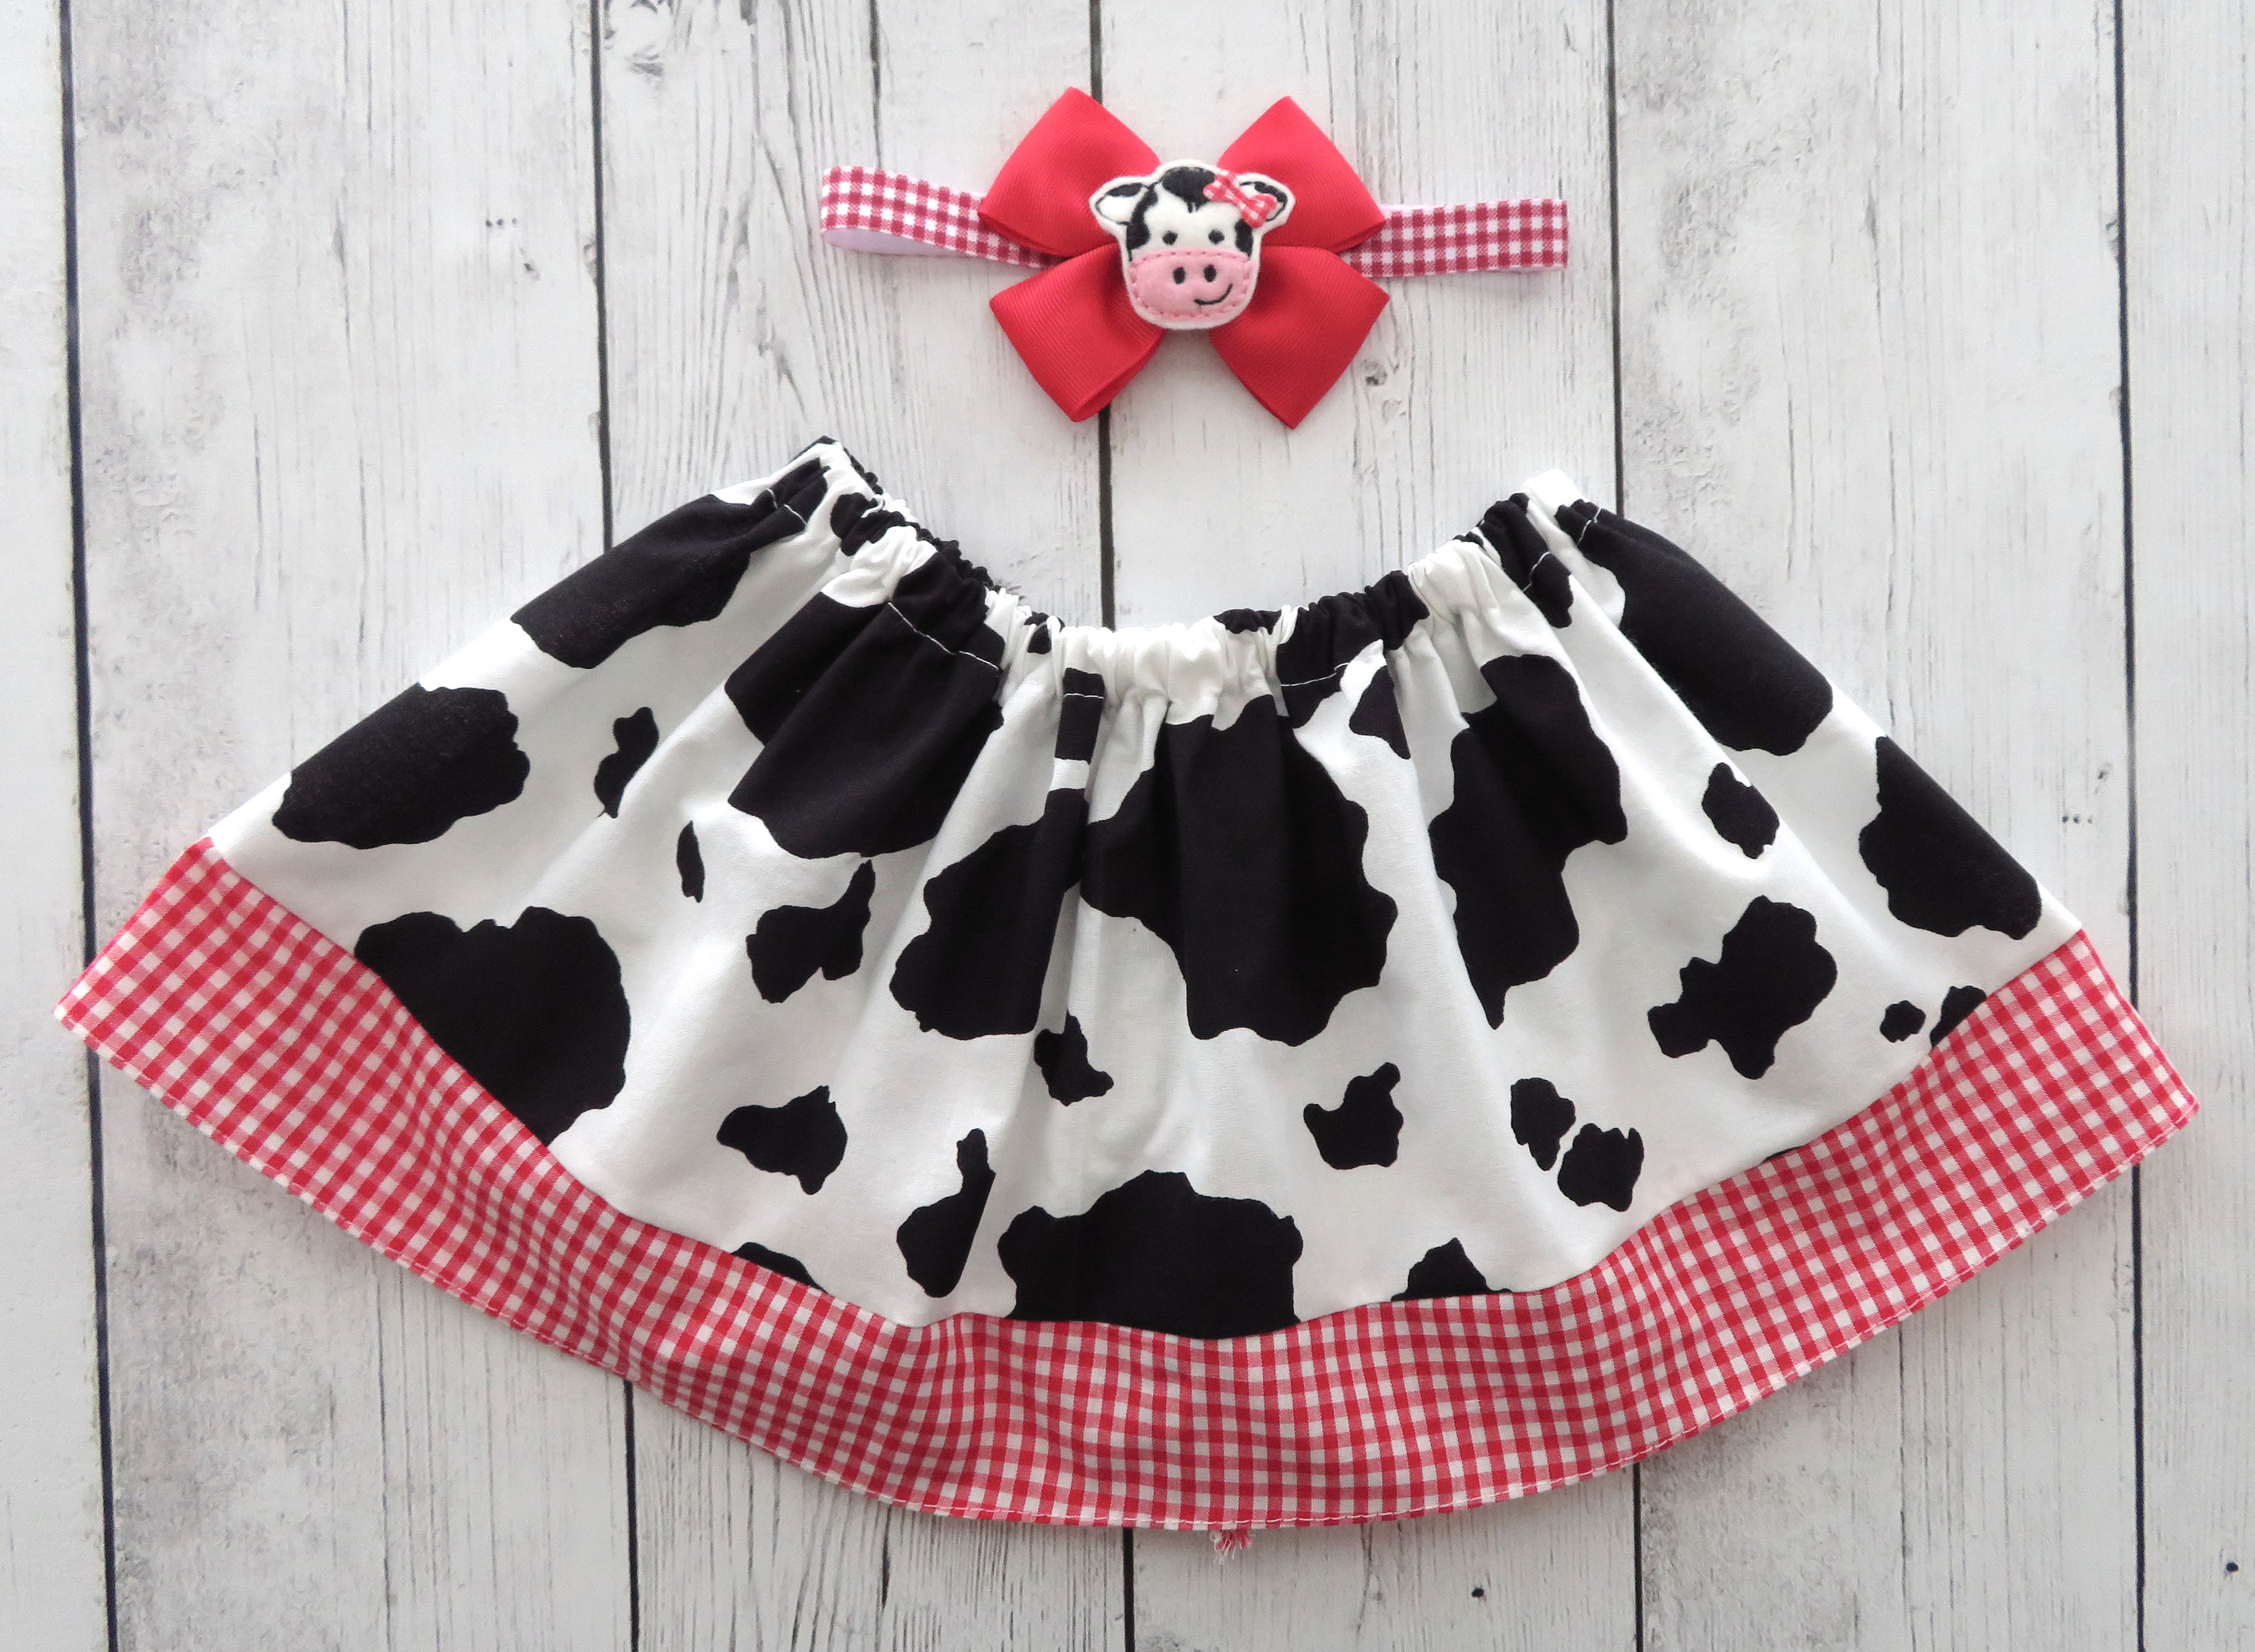 Cow Skirt for baby girl - cowgirl skirt, barnyard birthday, cow birthday, cow halloween costume, cow skirt girl, baby girl skirt, cow red